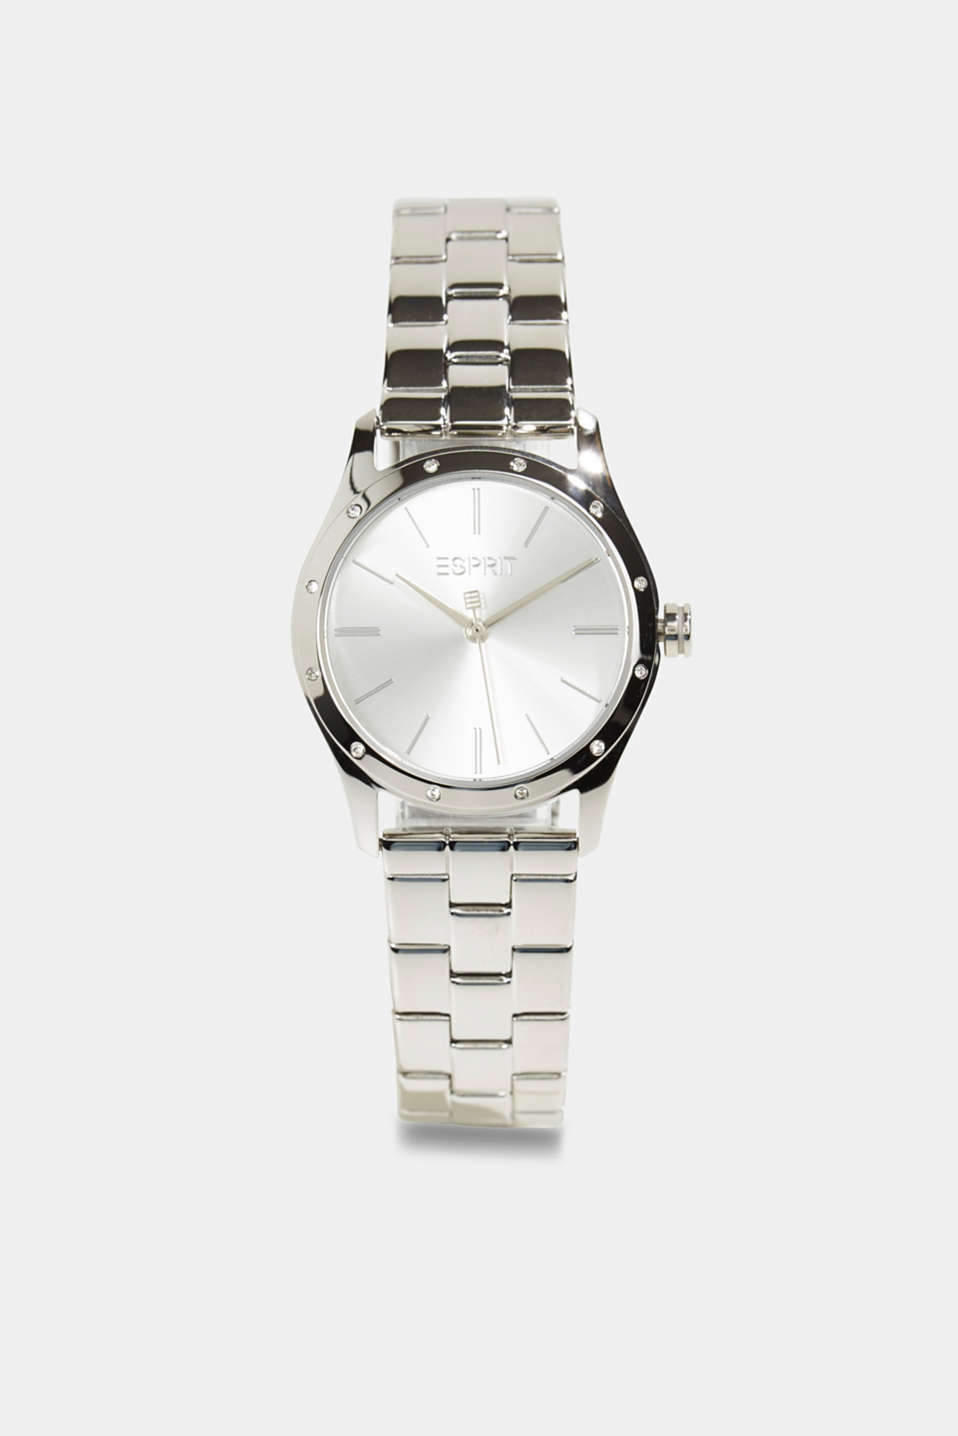 Esprit - Gemstone watch with zirconia